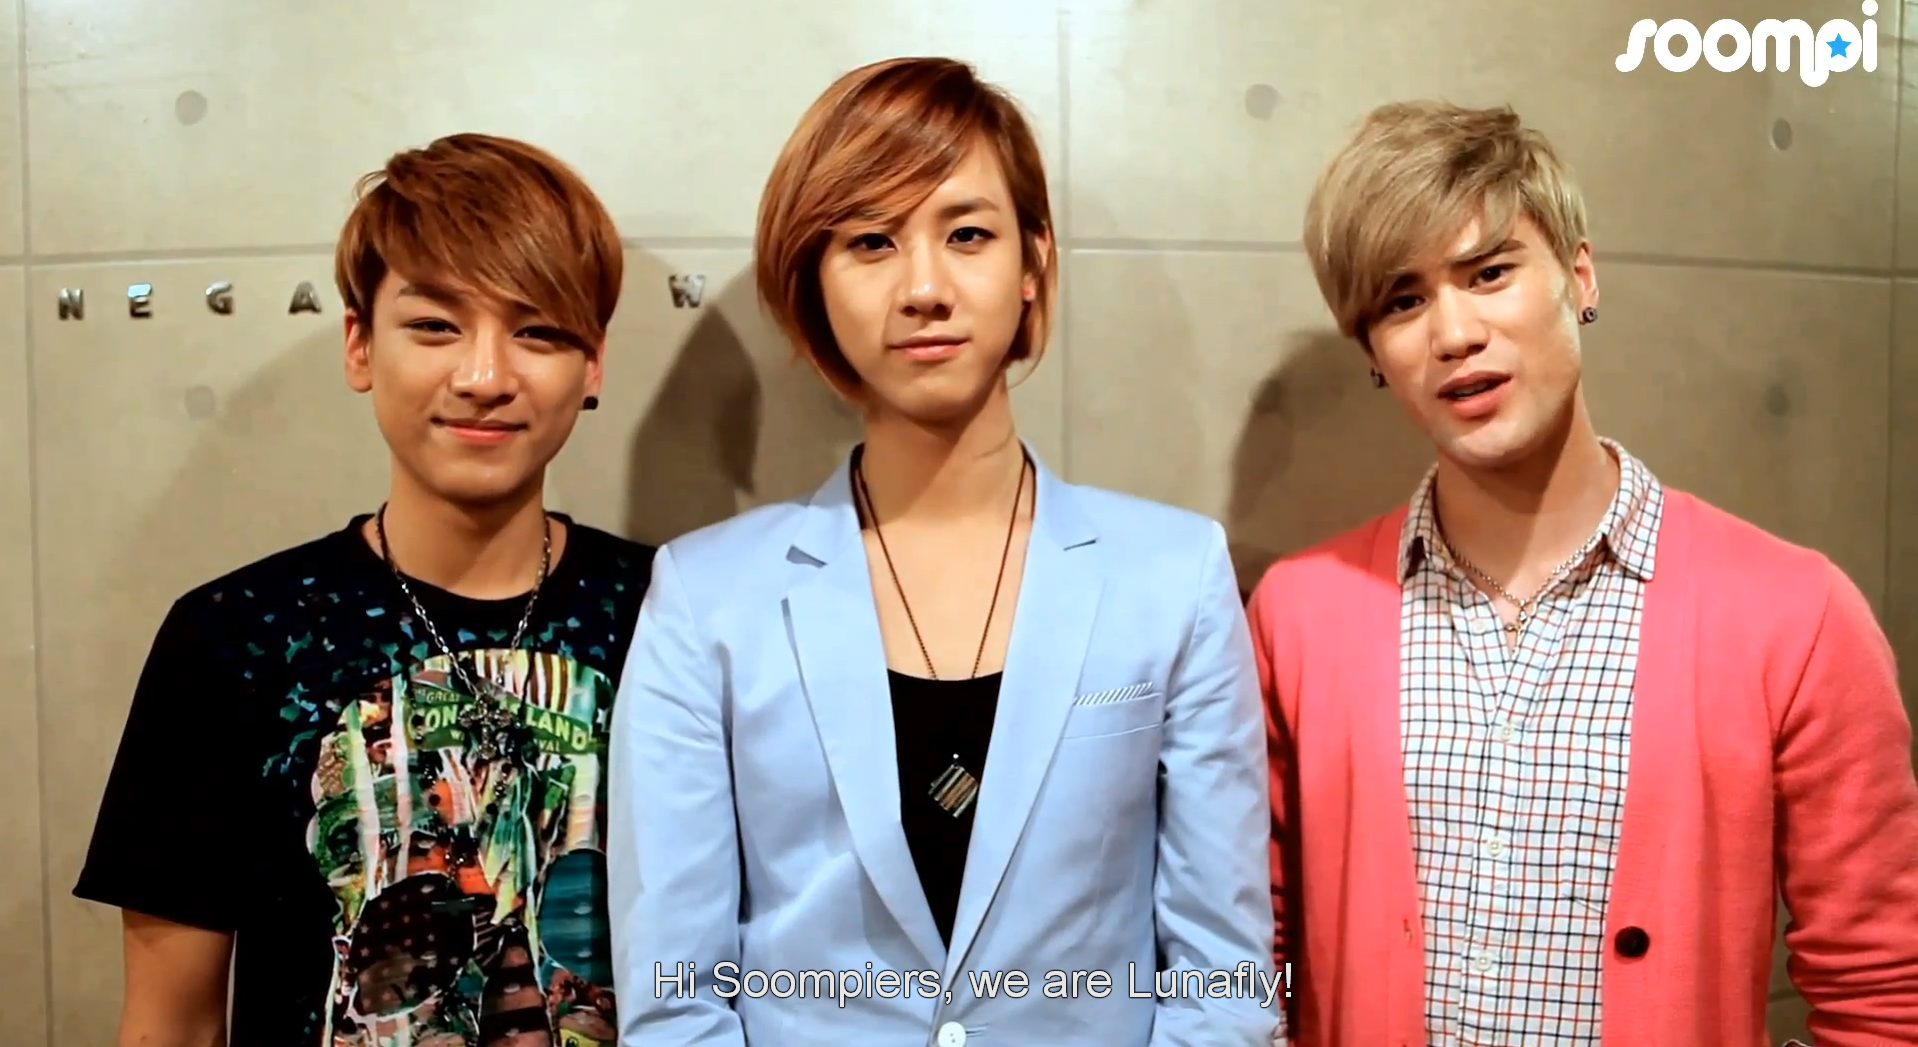 [Exclusive] LUNAFLY Sends Soompiers a Shout-Out and Adorable Handwritten Memo!